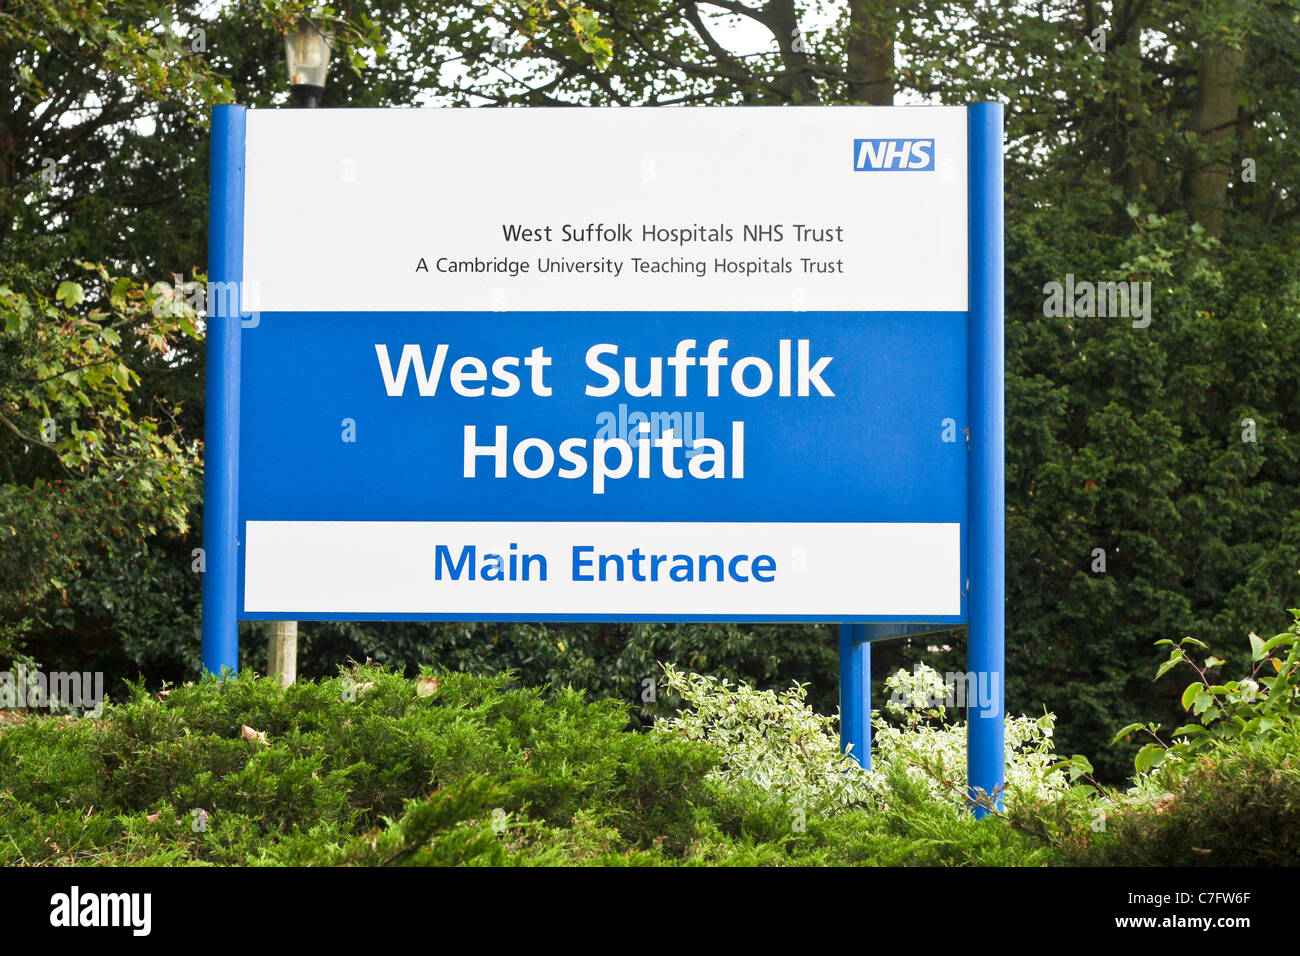 Entrance sign for the West Suffolk Hospital in Bury St Edmunds. - Stock Image